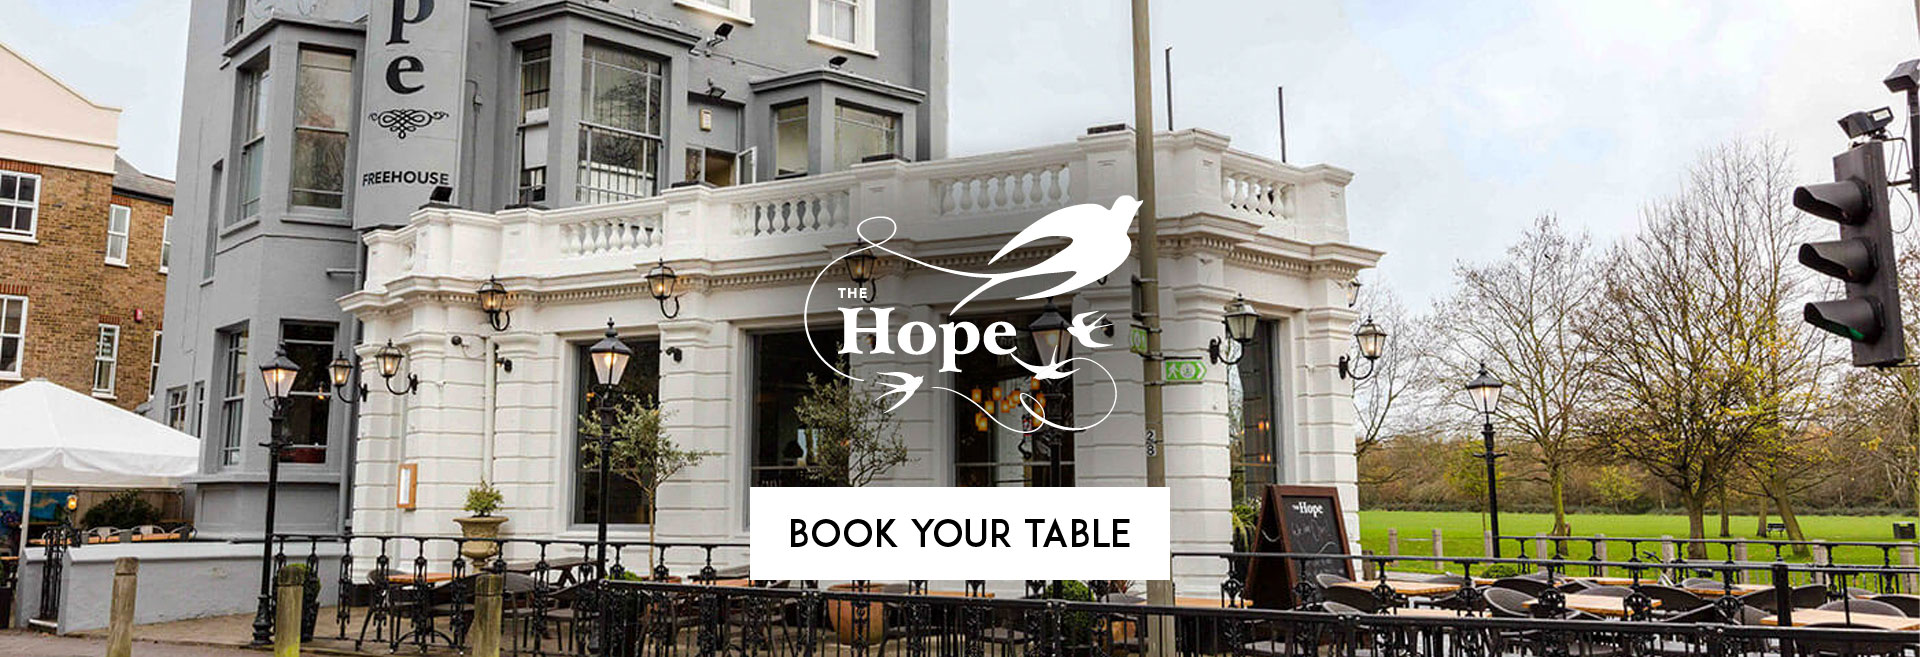 Book Your Table at The Hope